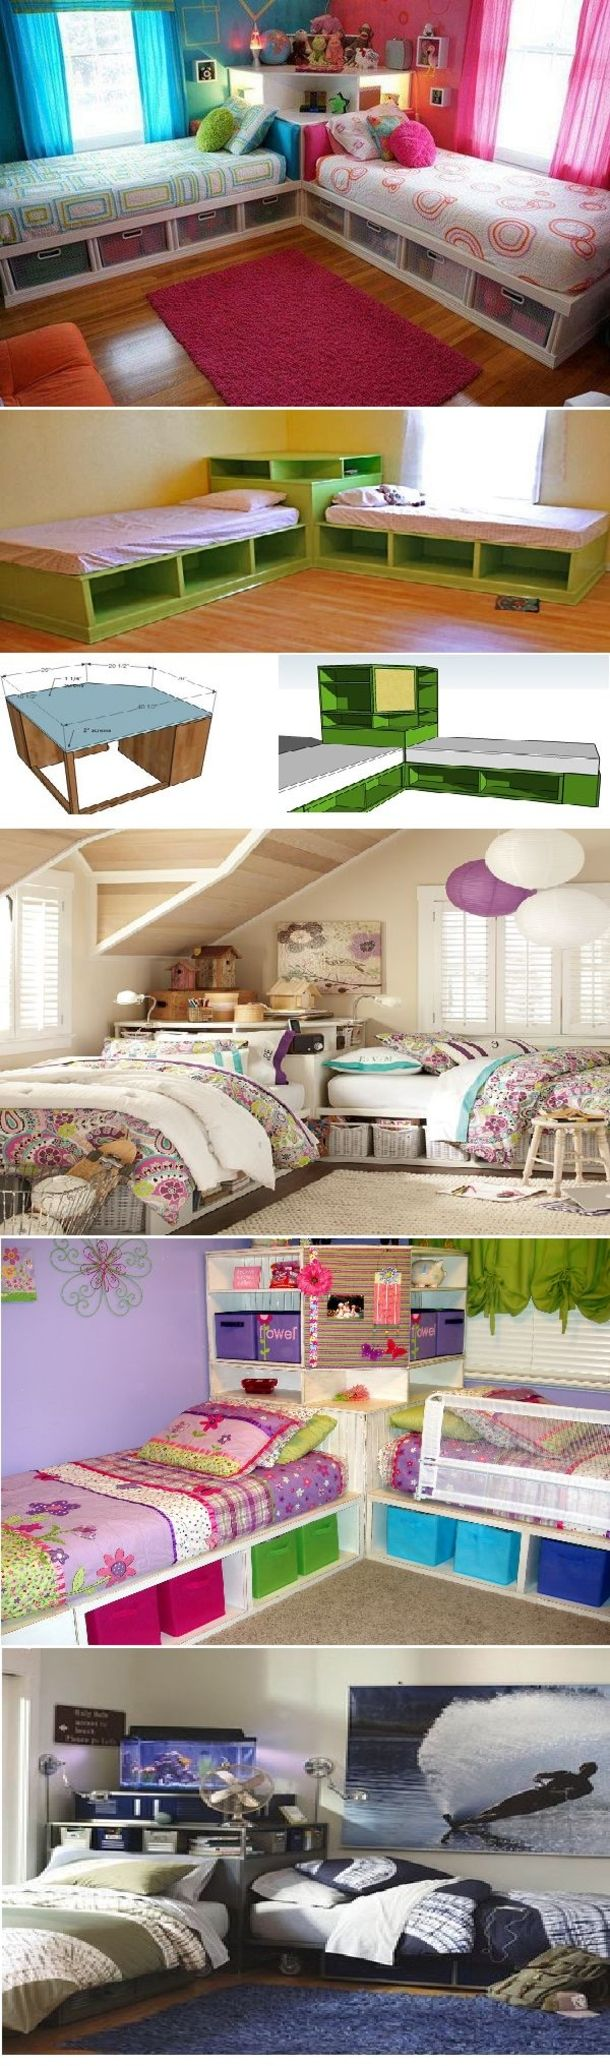 Bedroom design for boy and girl sharing - Best Shared Bedroom Ideas For Boys And Girls